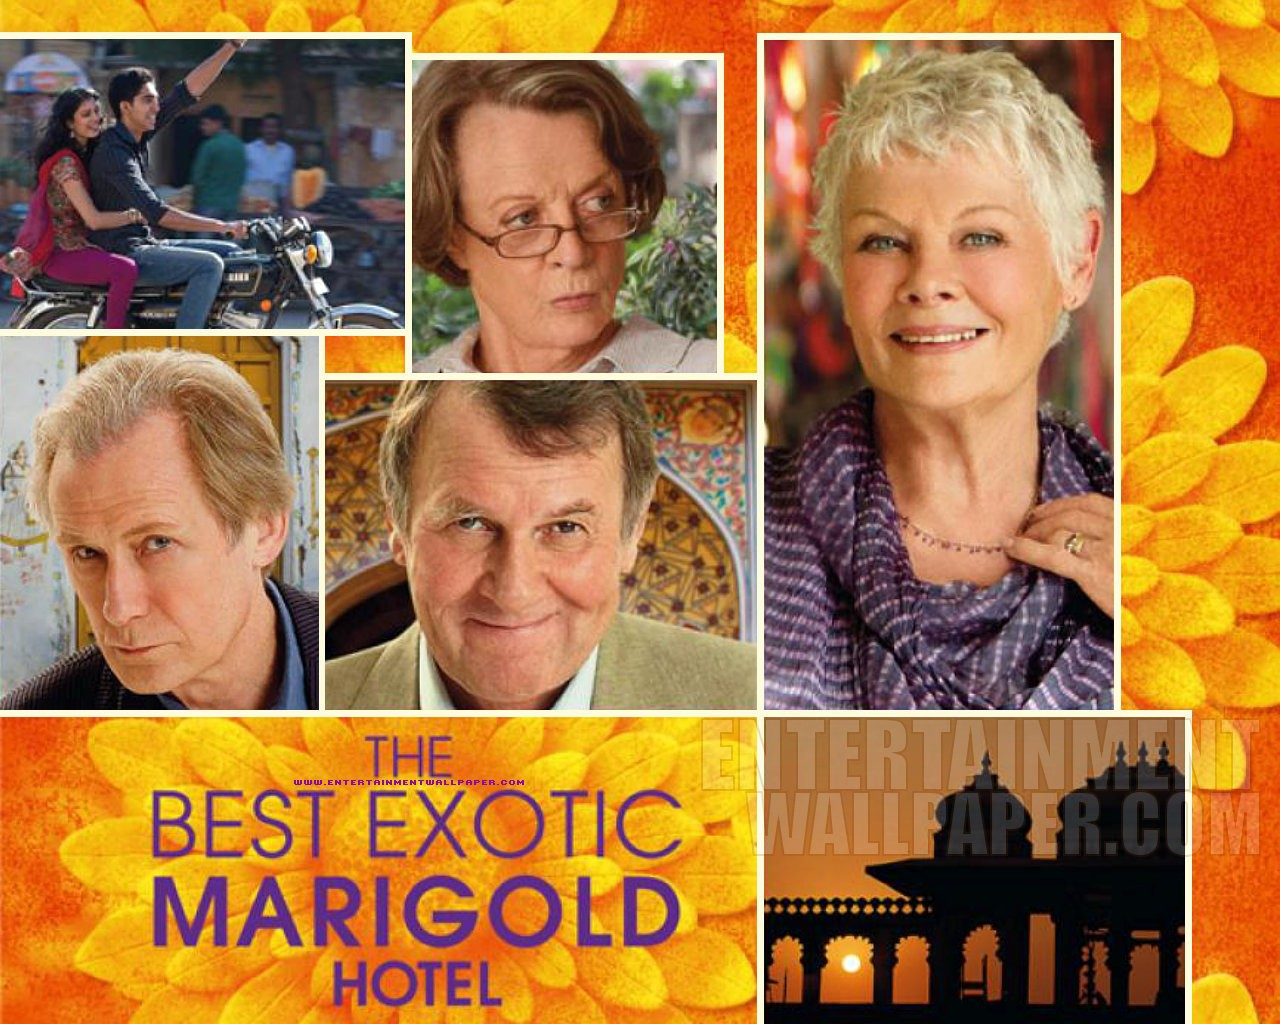 Victorian Swag: The Best Exotic Marigold Hotel